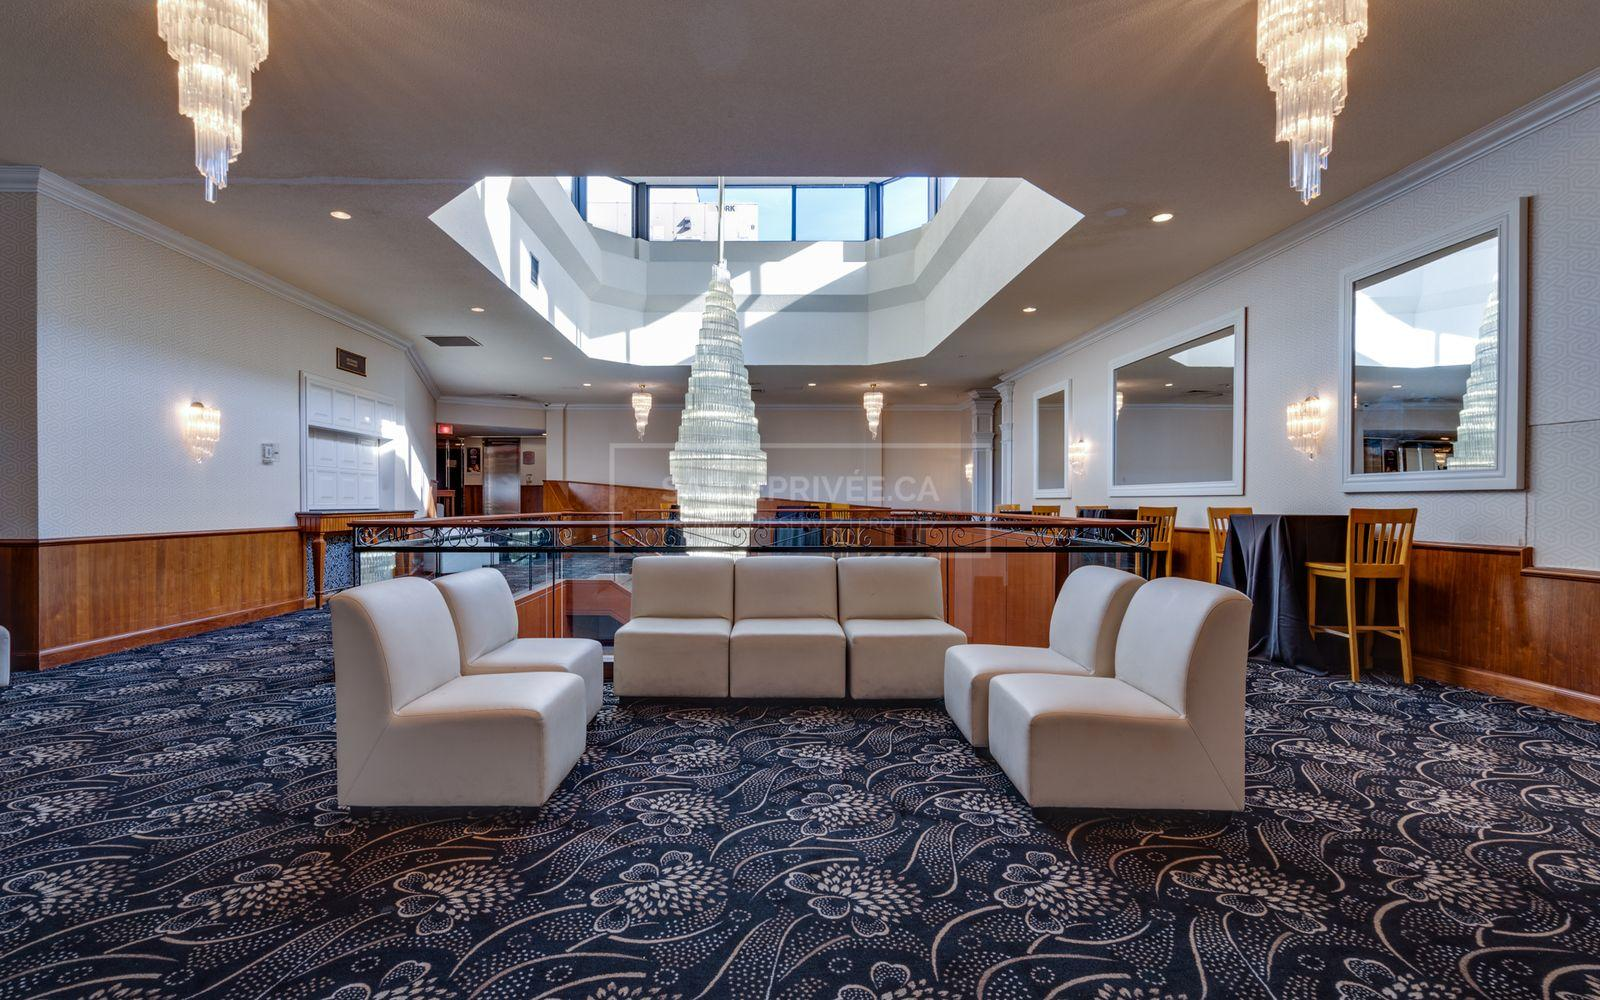 Couch and chairs in atrium.